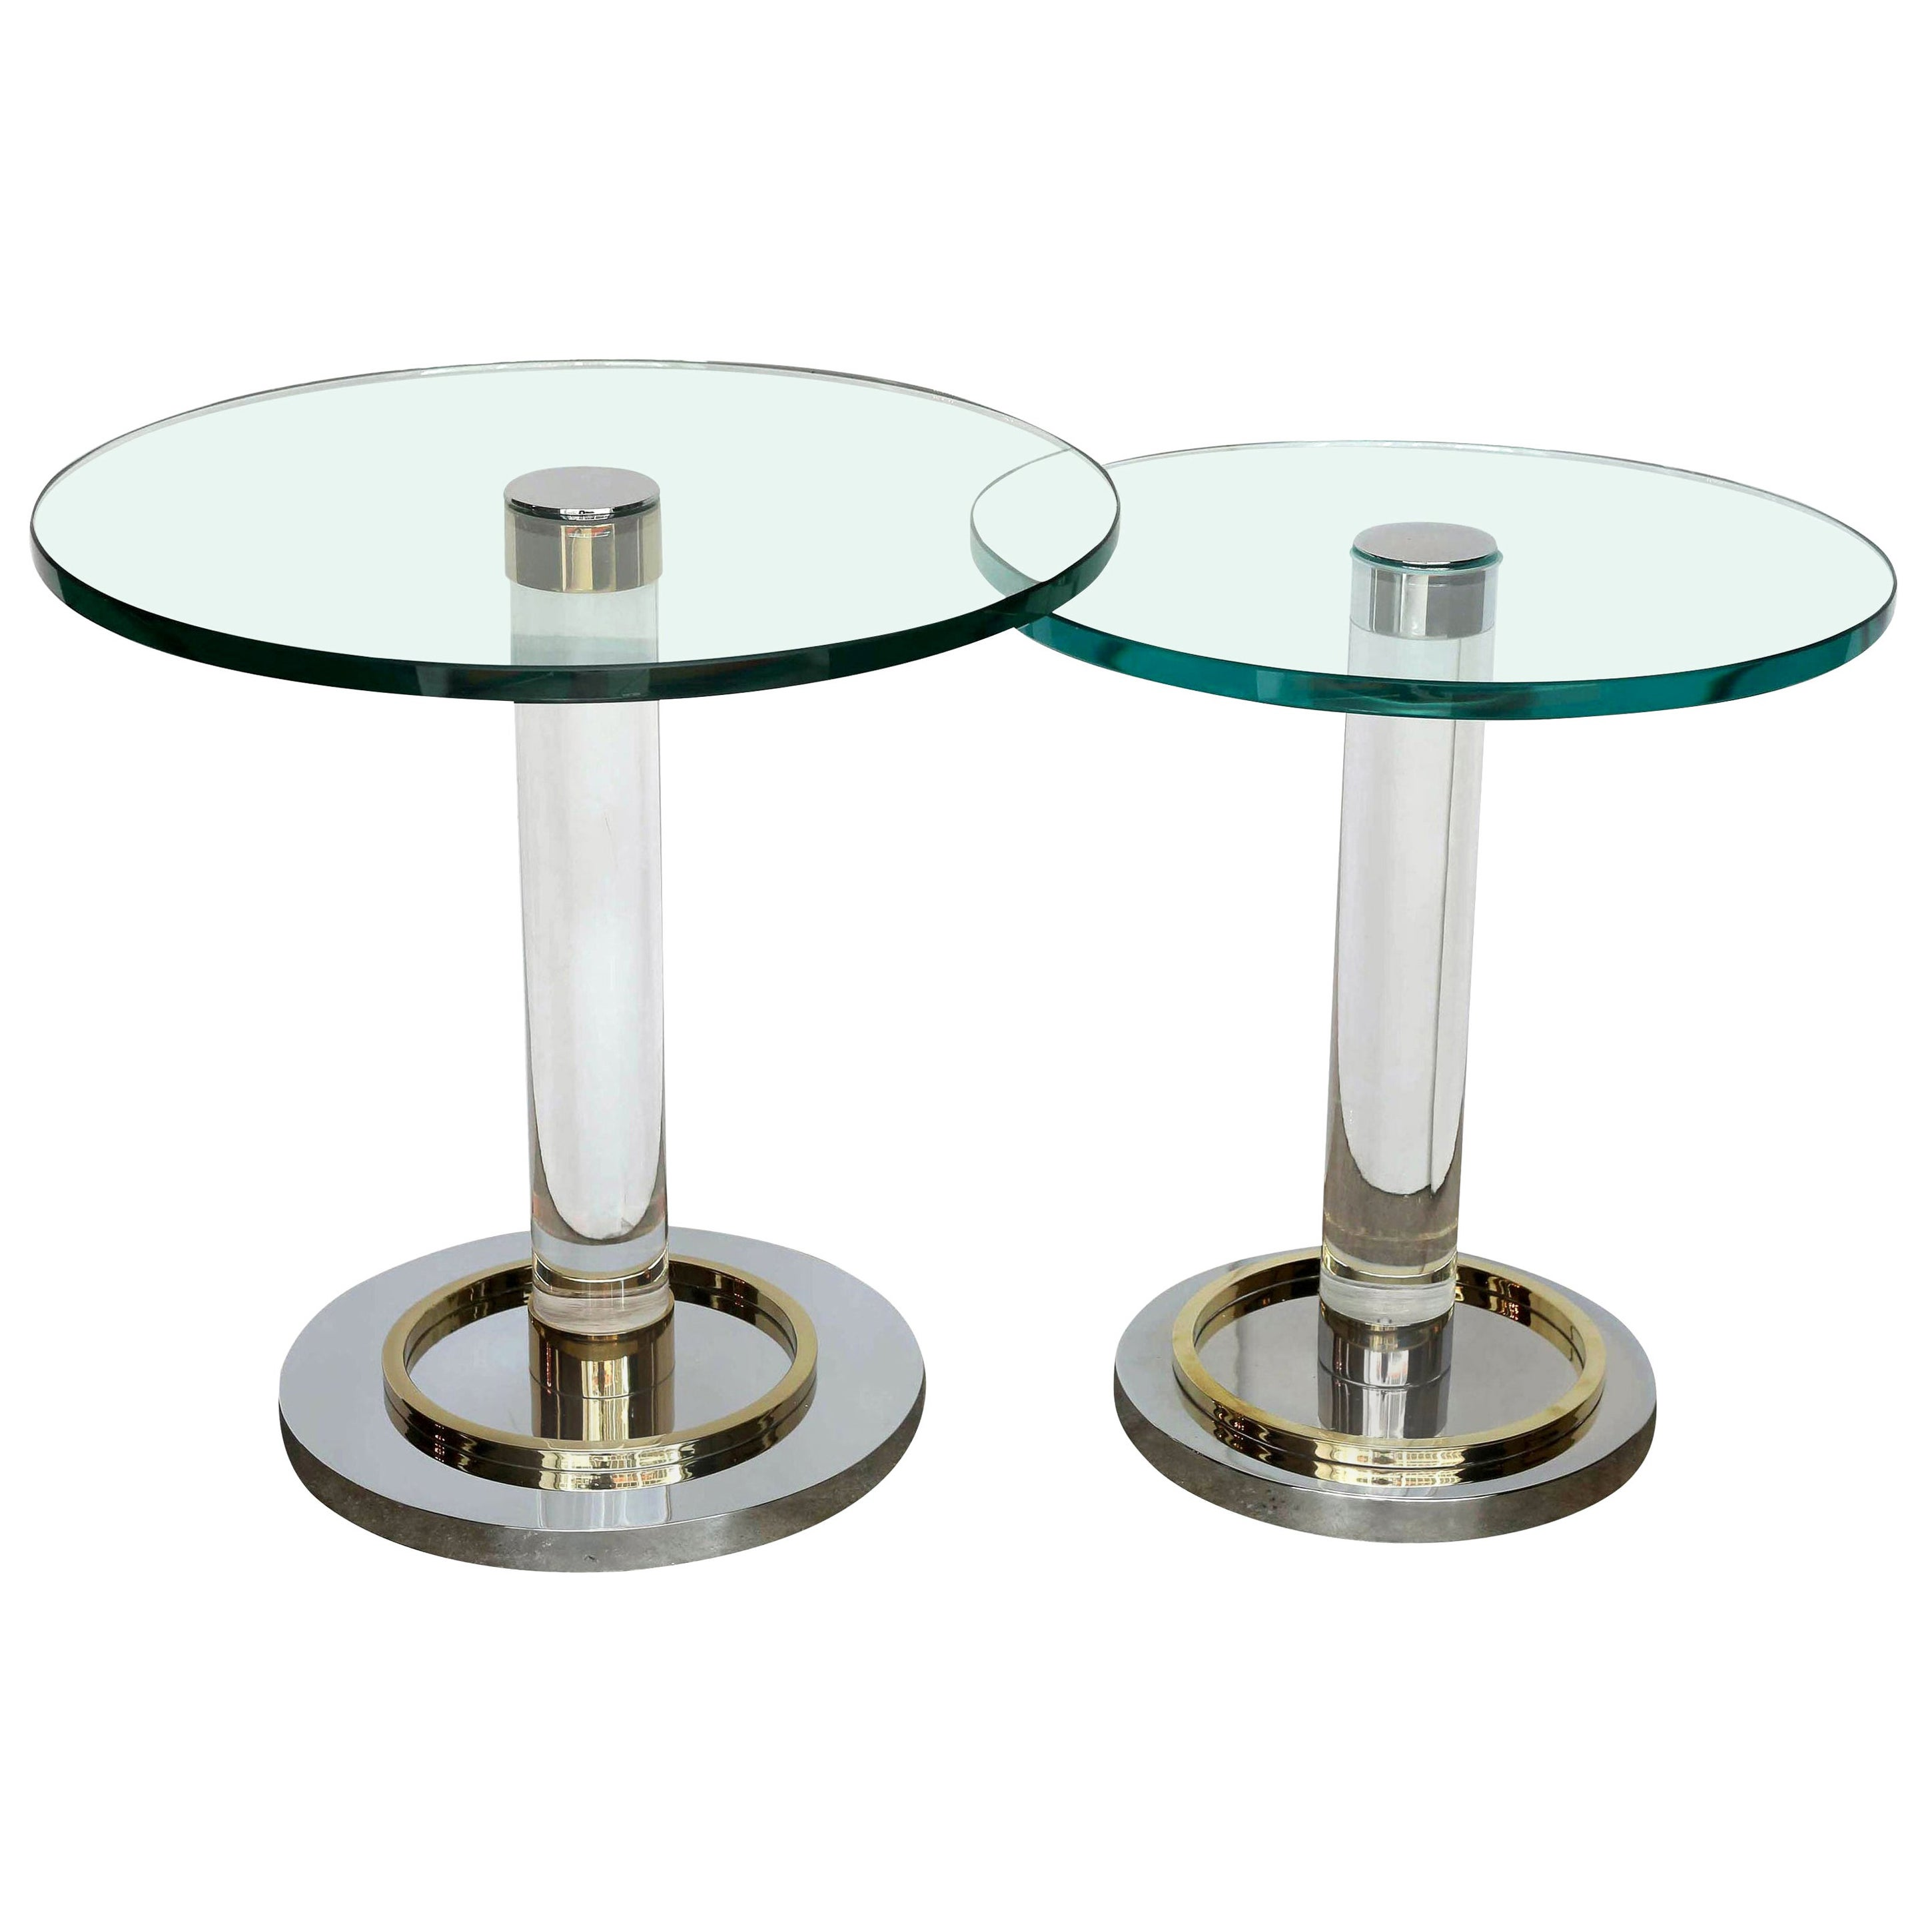 2 Charles Hollis Jones Stair-Stepped Lucite, Glass, Brass and Chrome Side Tables